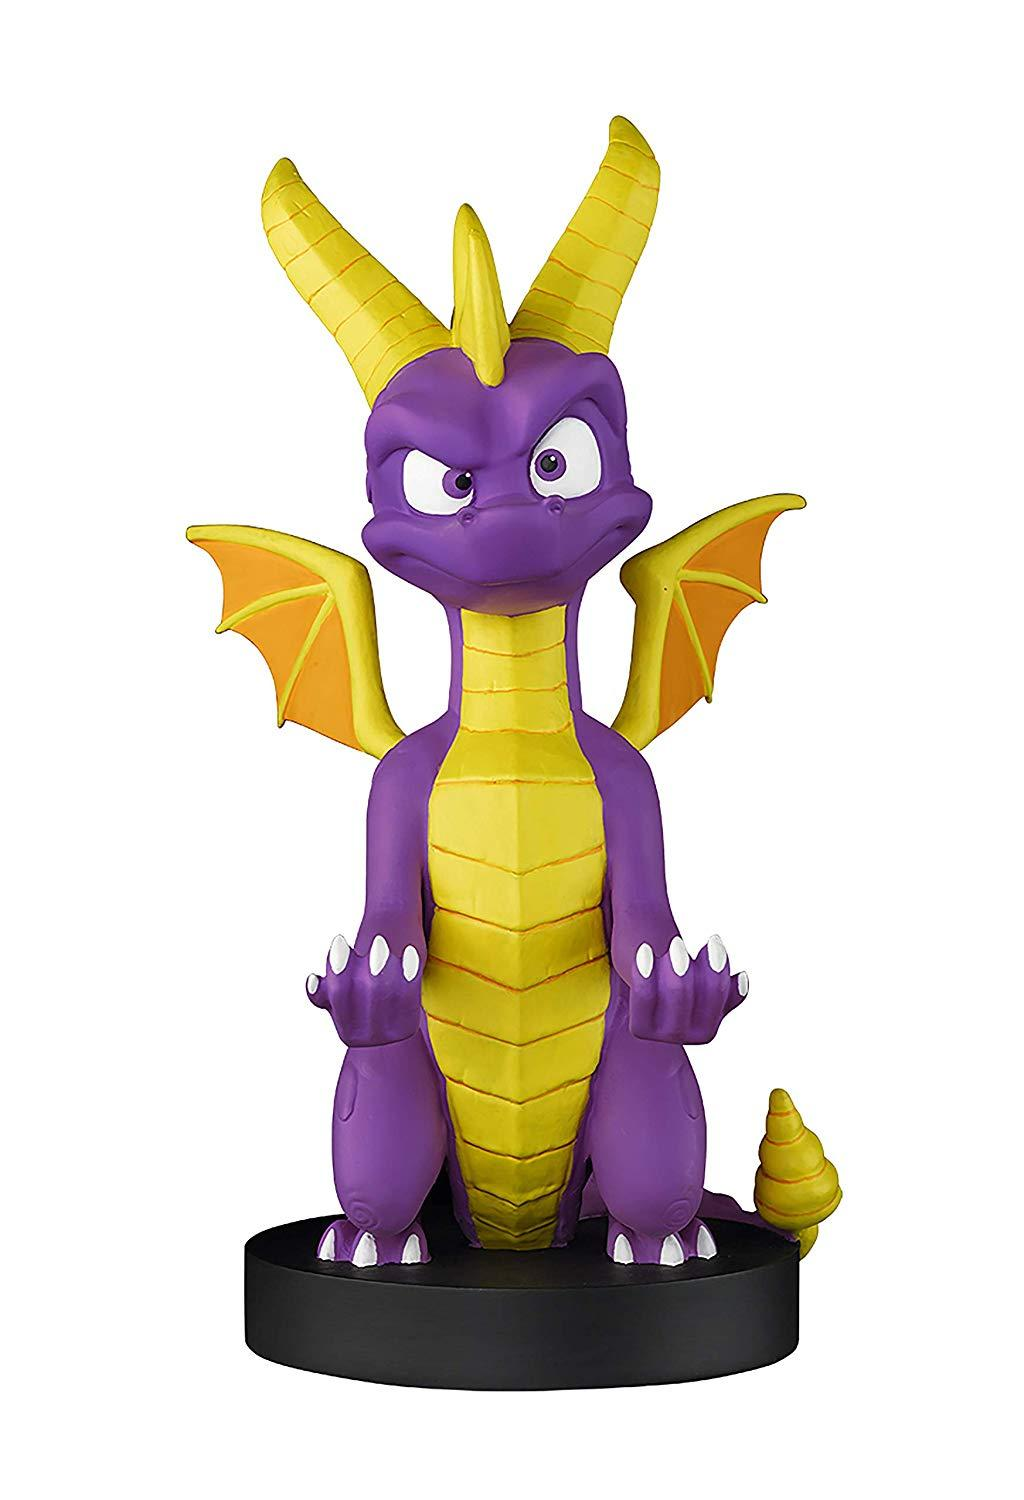 CABLE GUYS Charging Holder - Spyro - 20cm